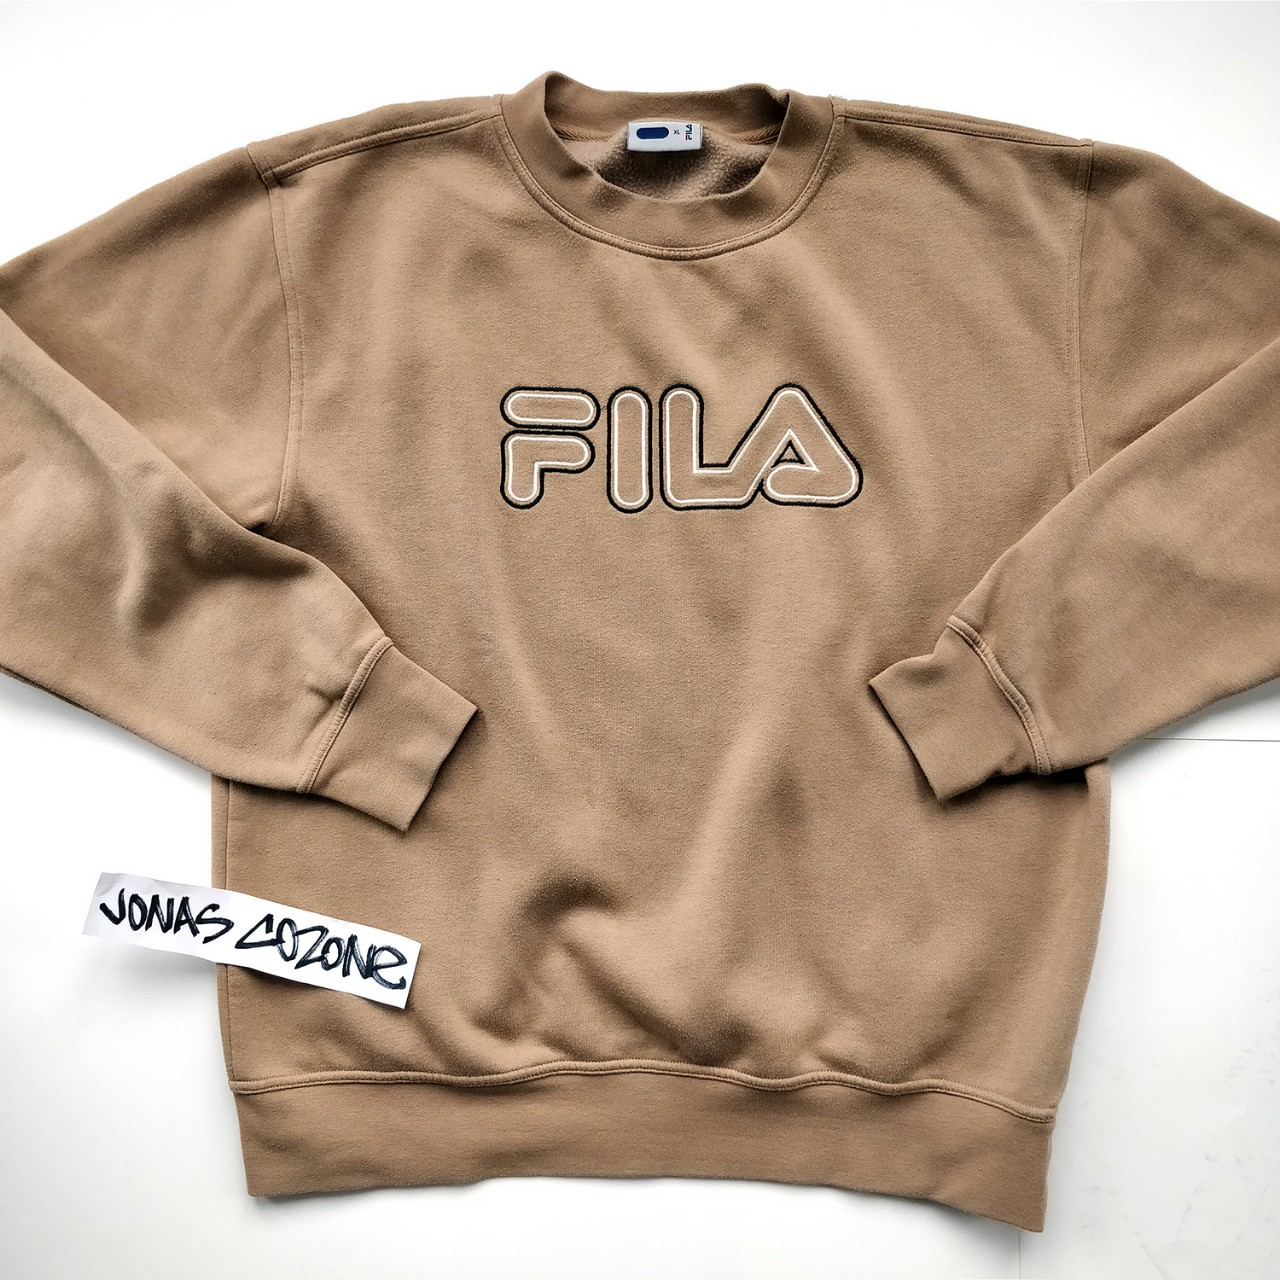 Vintage beige FILA sweatshirt. Worn but very good Depop